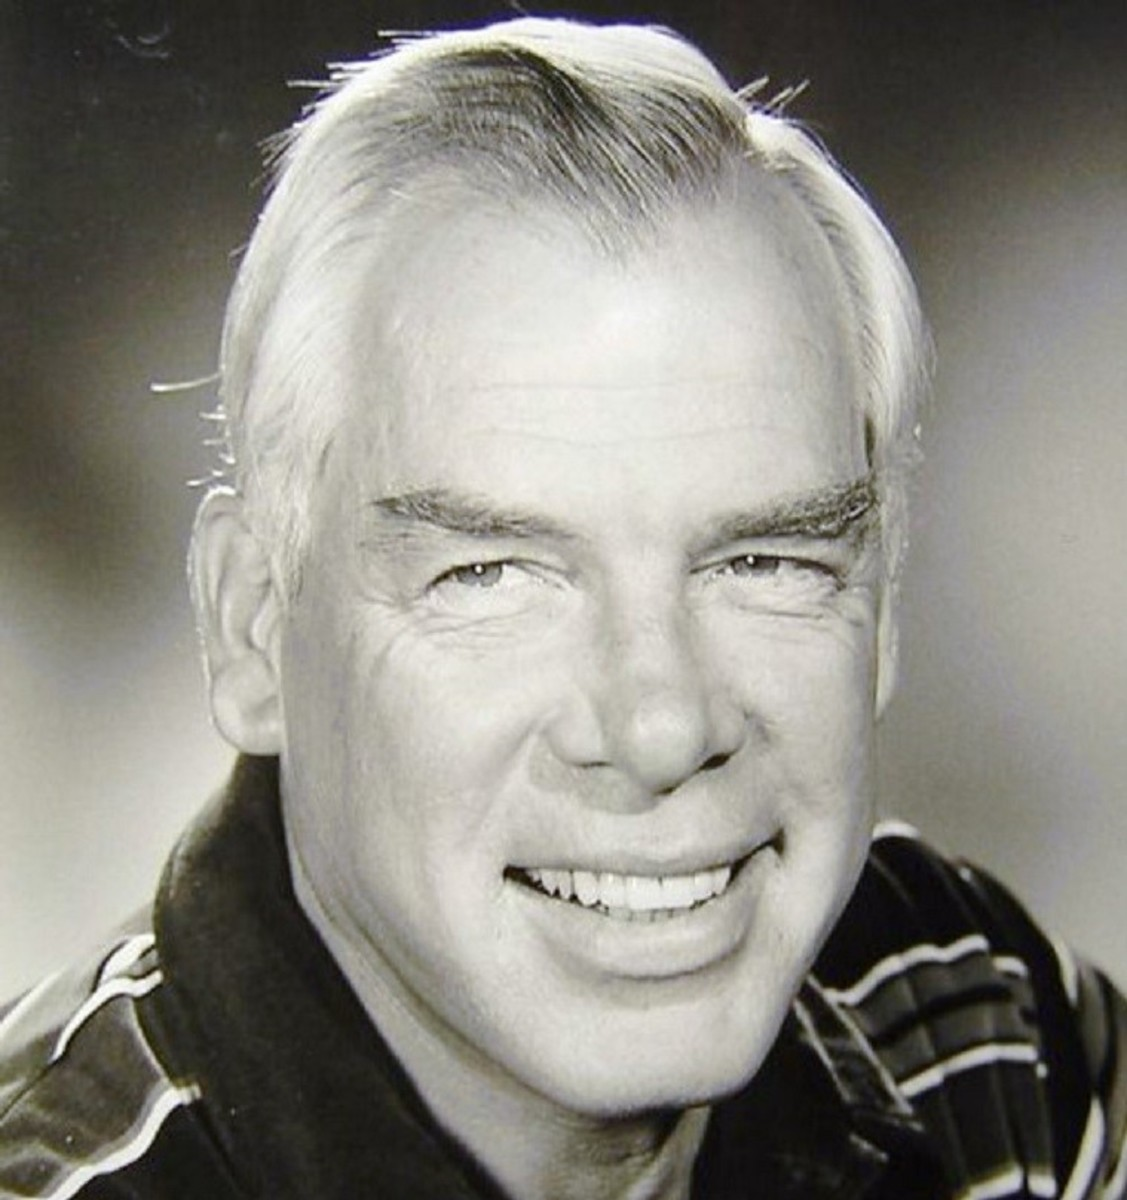 Lee Marvin: born February 19 1924 died August 29 1987 was a famous film star